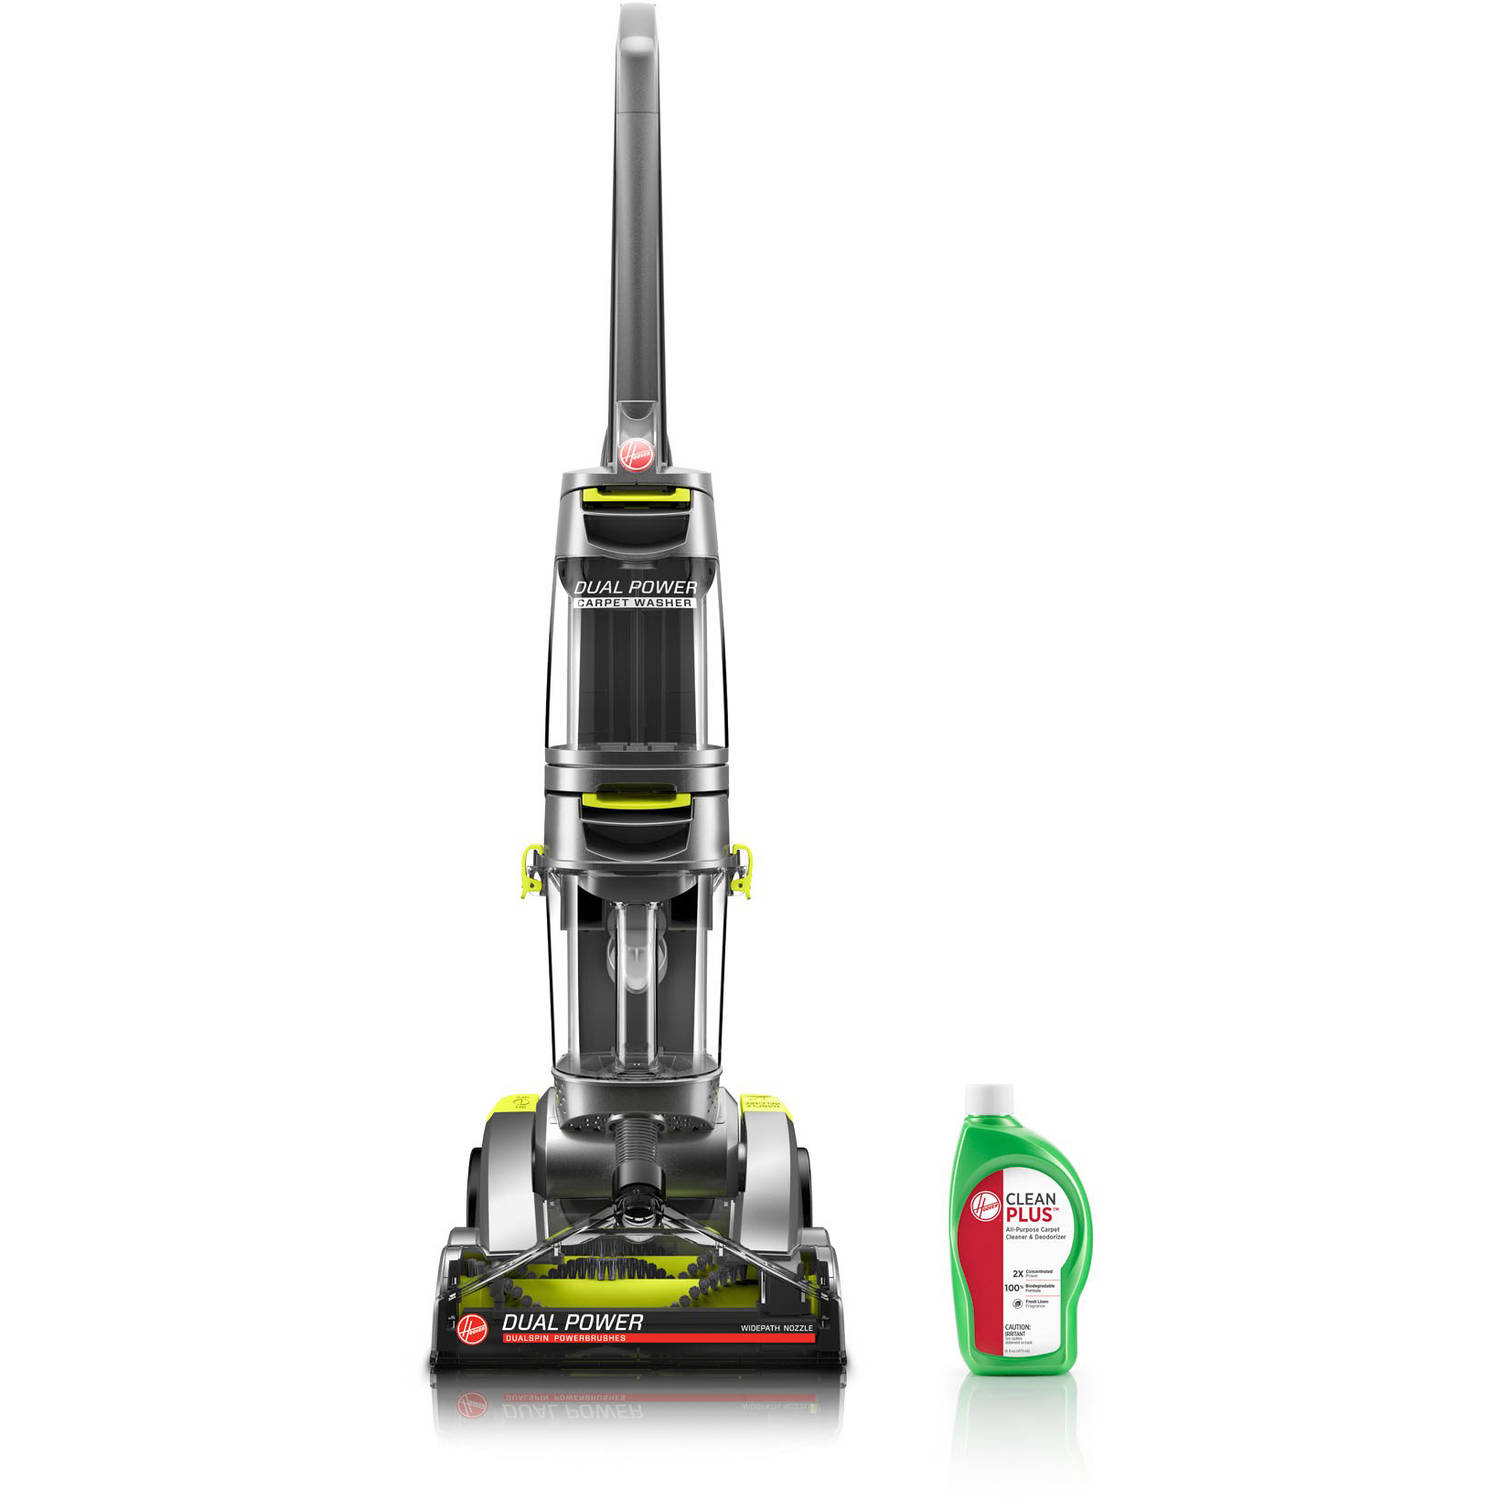 Hoover Dual Power Carpet Cleaner, FH50900